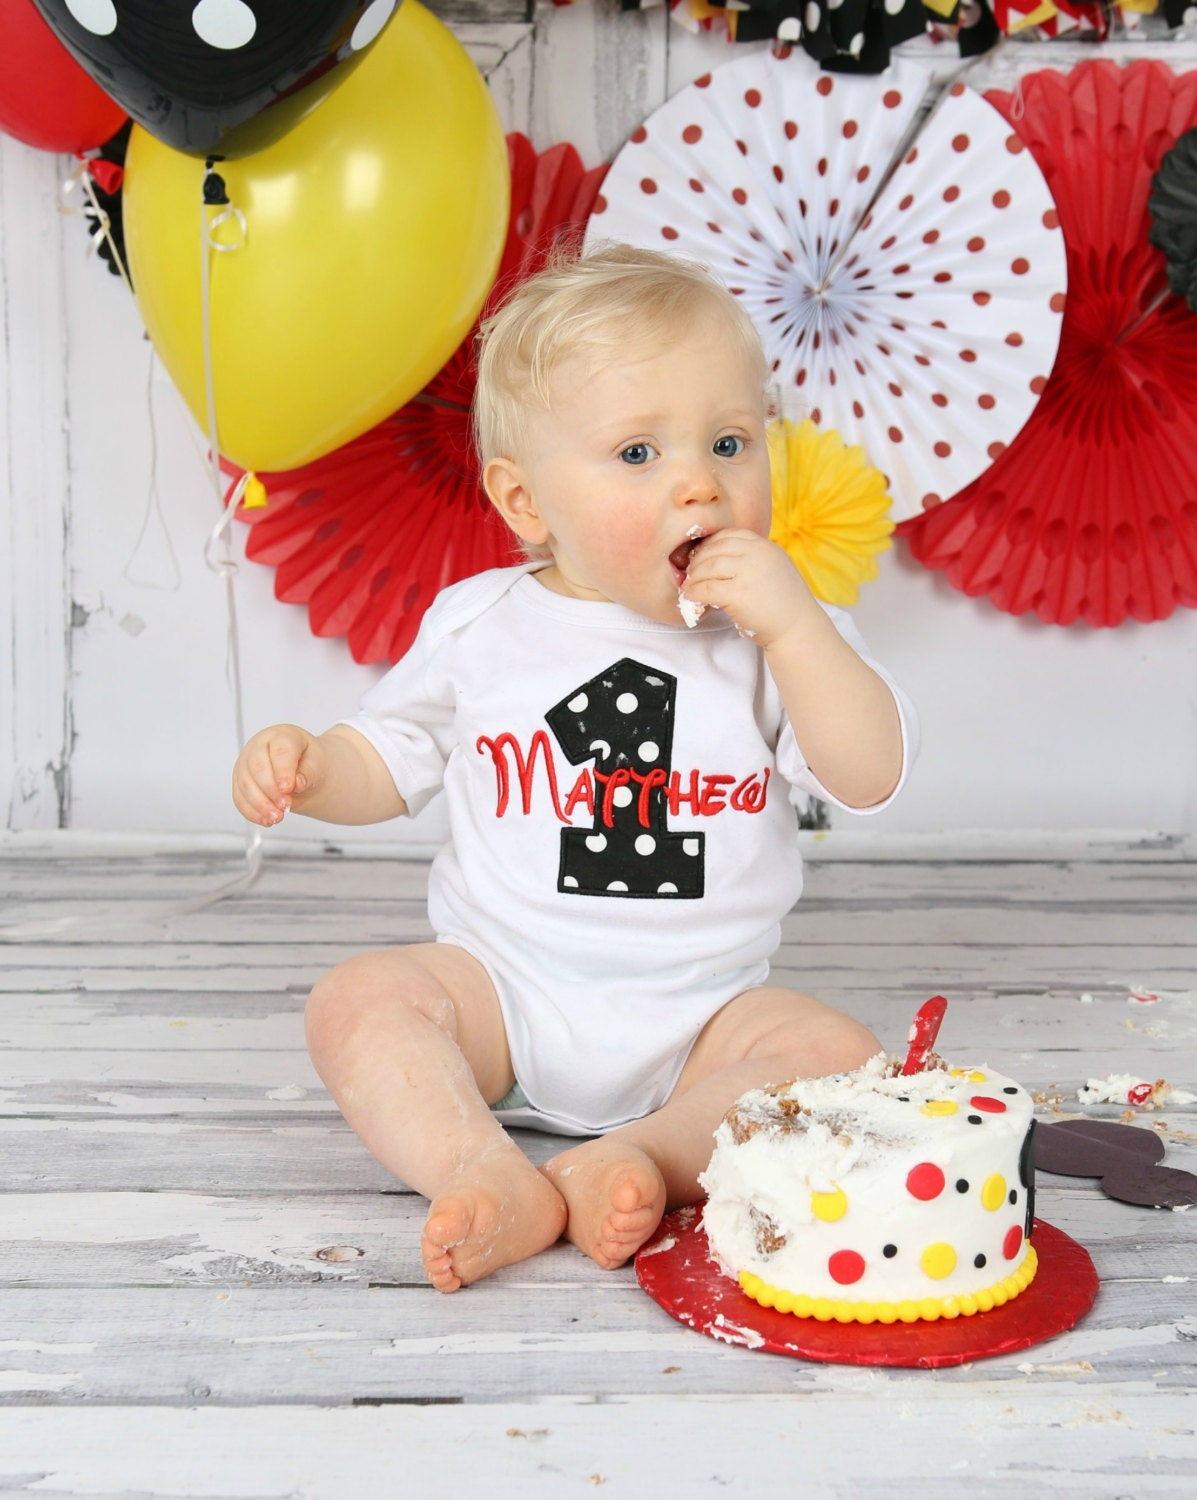 Shop the cutest baby boy outfits with our latest collection for newborns and infants! This fun designer & brand piece selection features adorable items for special occasions and 1st Birthday .